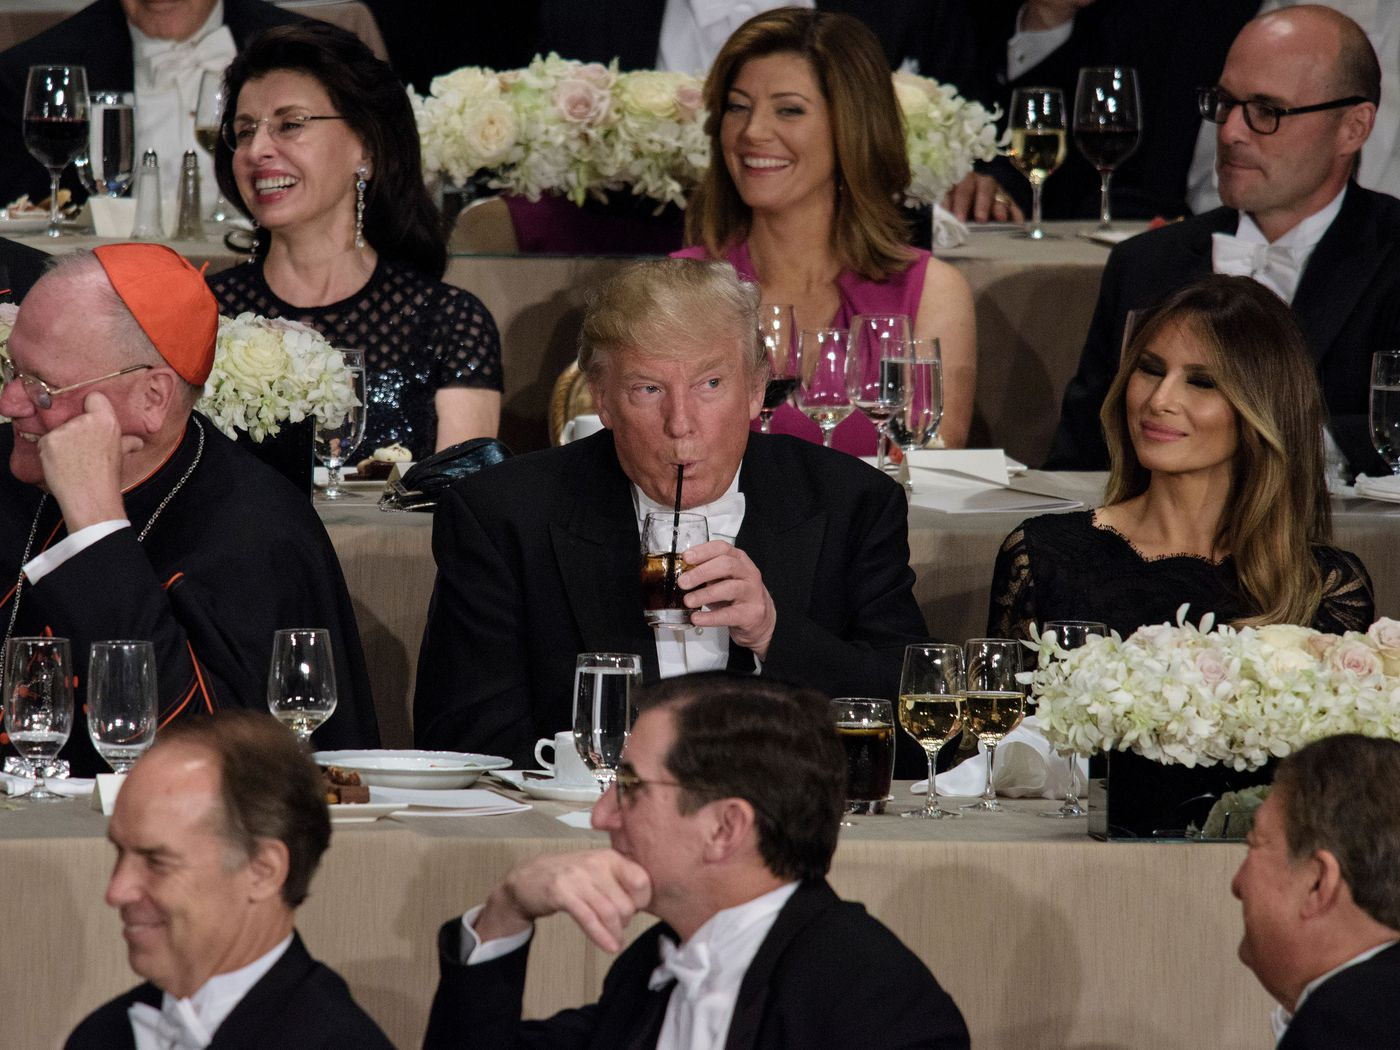 how many diet drinks does trump drink